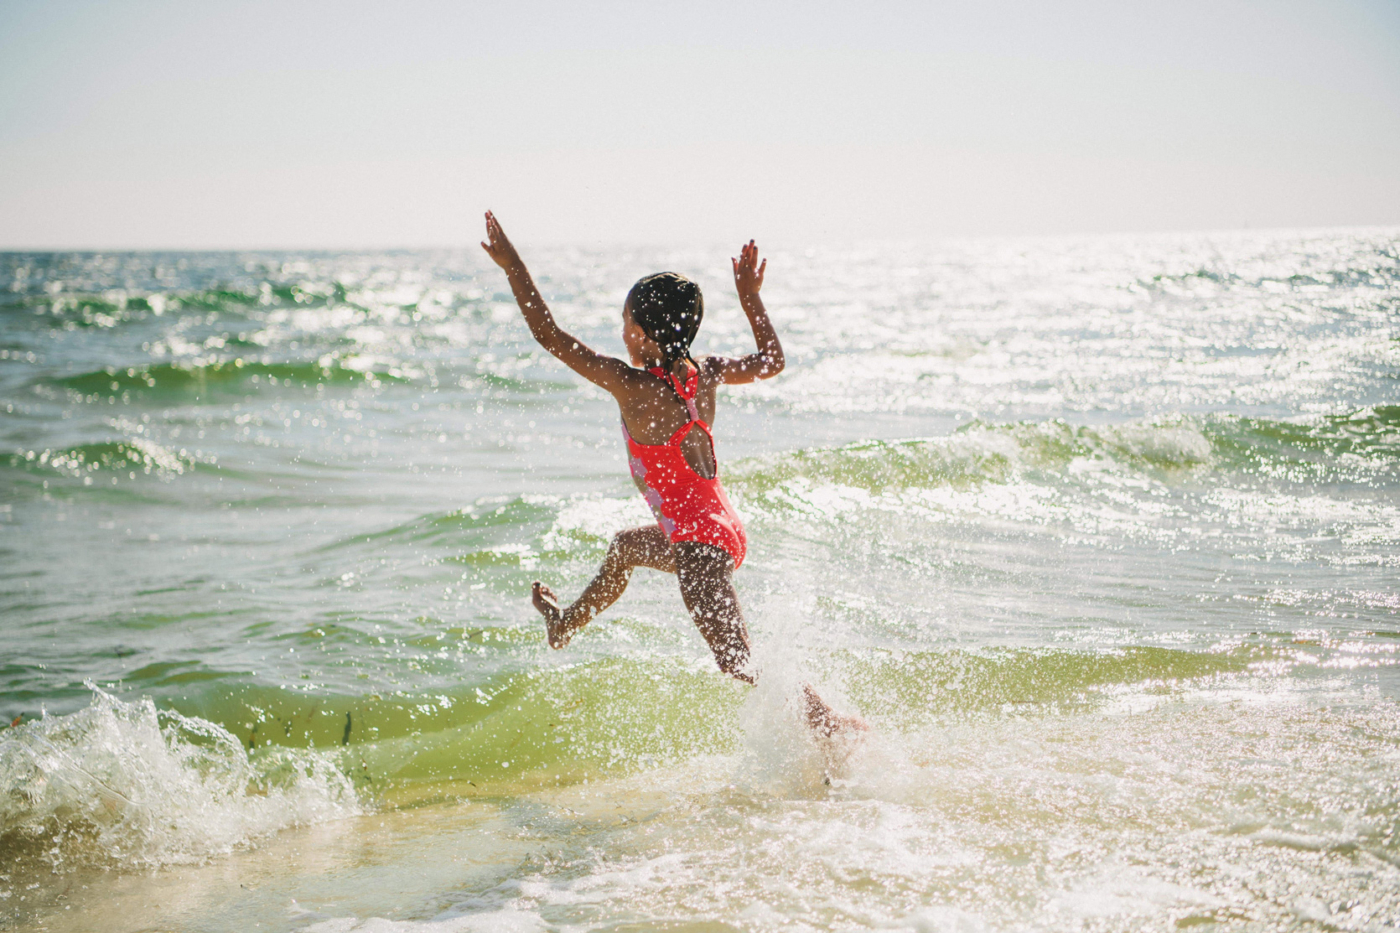 Image of young girl playing in water.